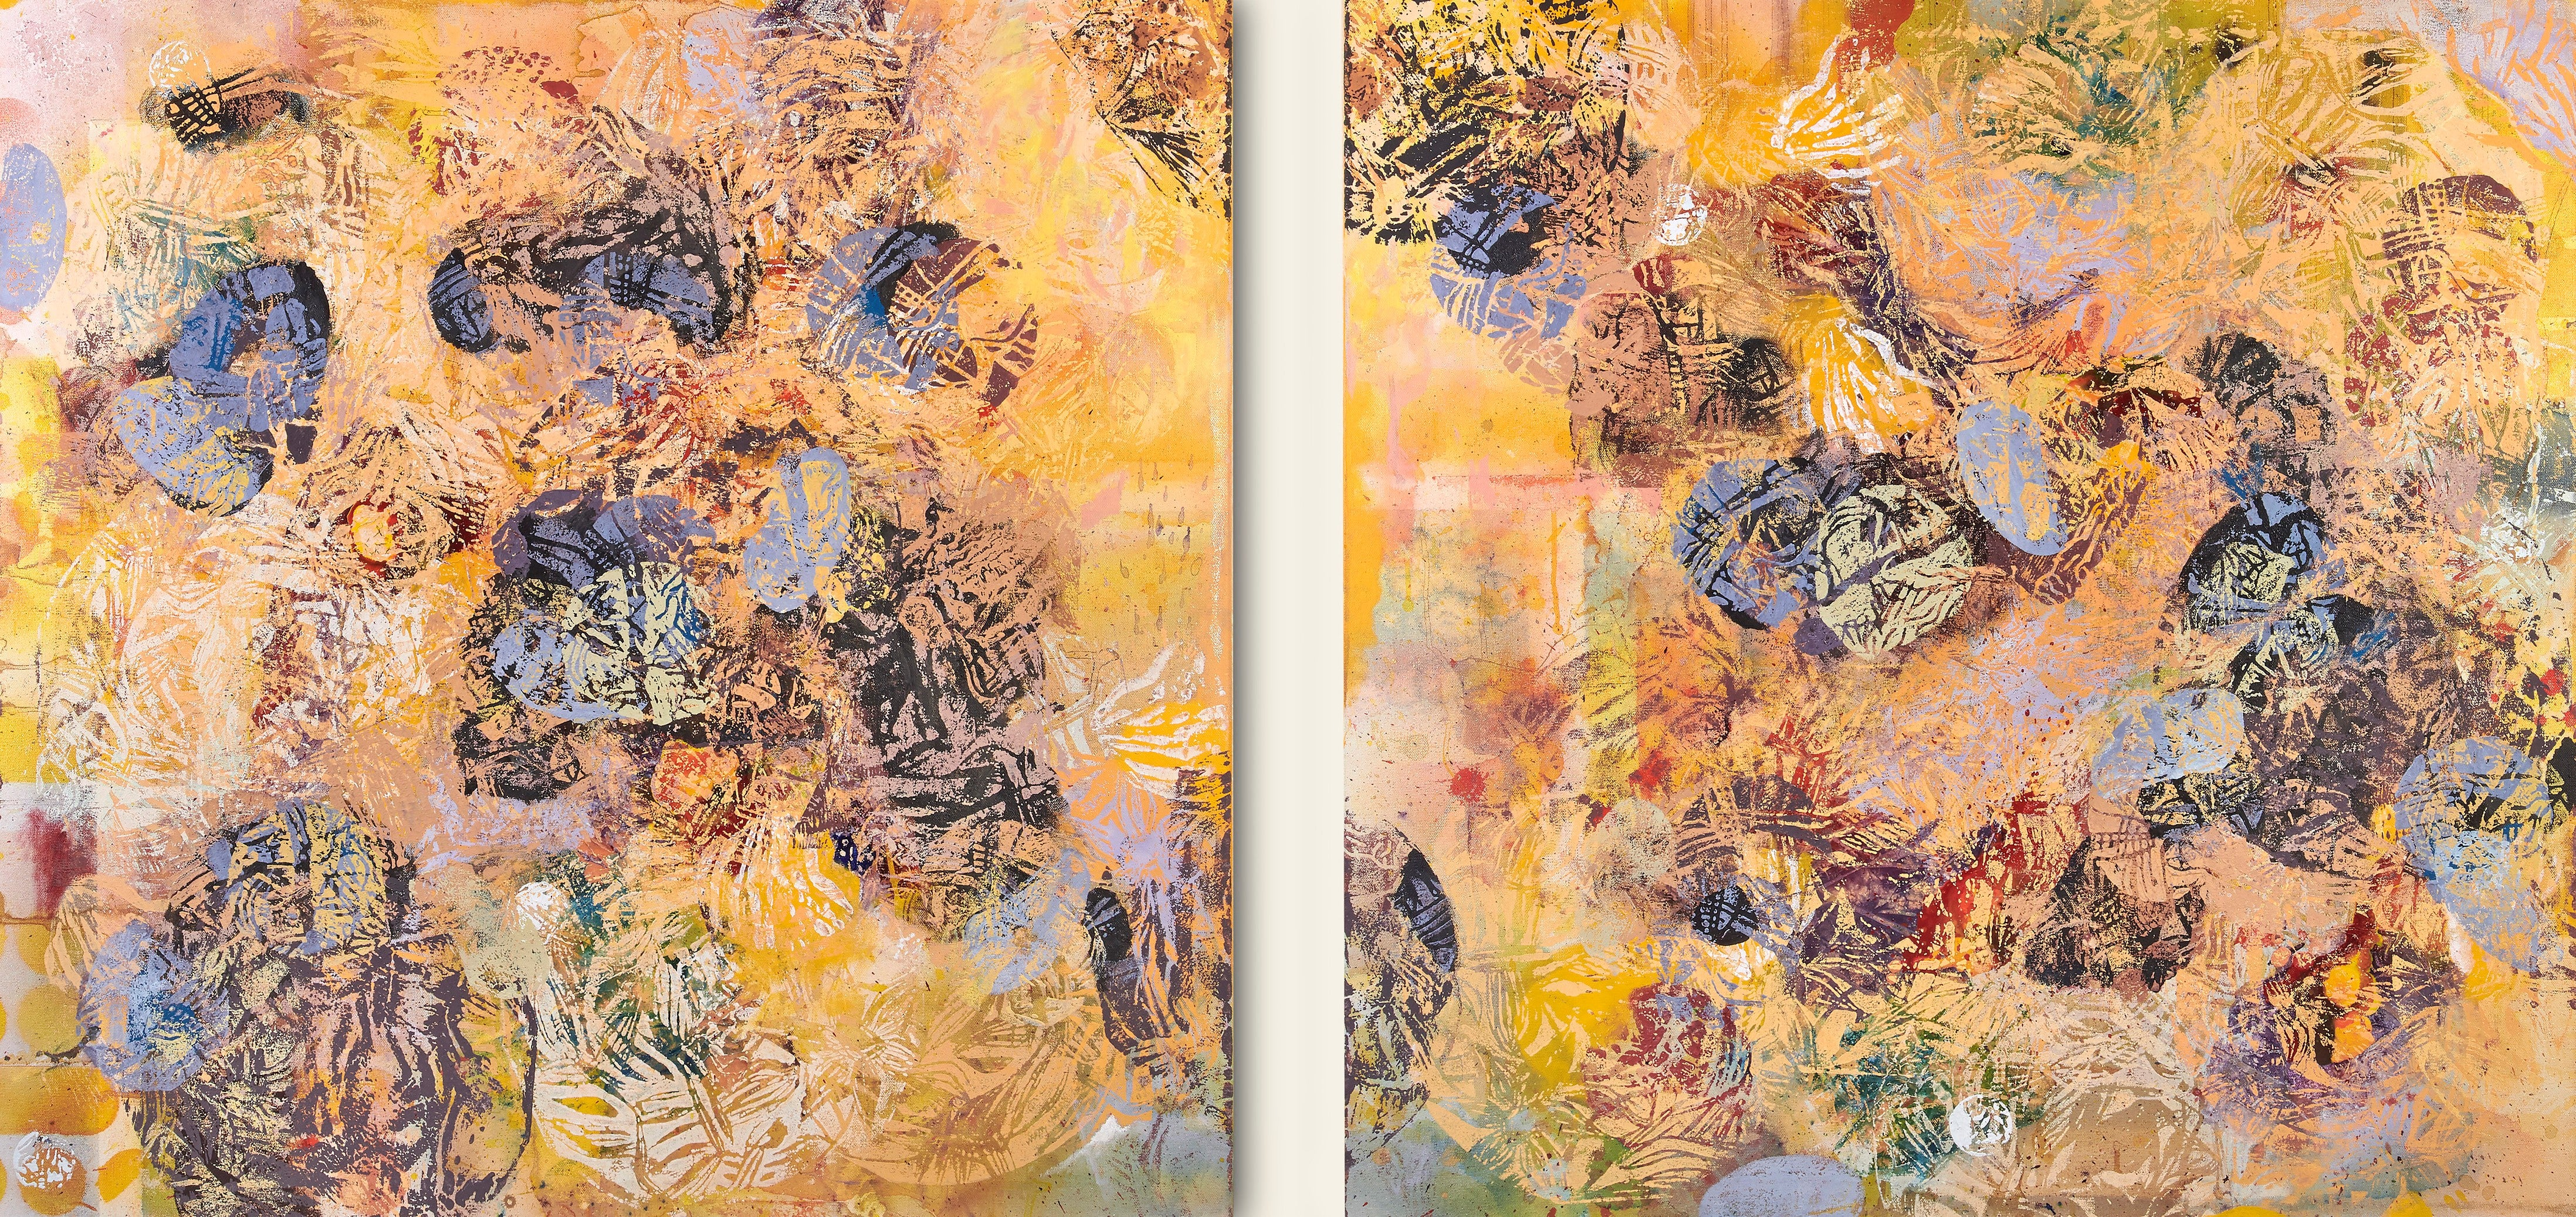 Muscle Dancing - Strong Abstract Diptych in Yellow + Blue + Orange with Lino Cut